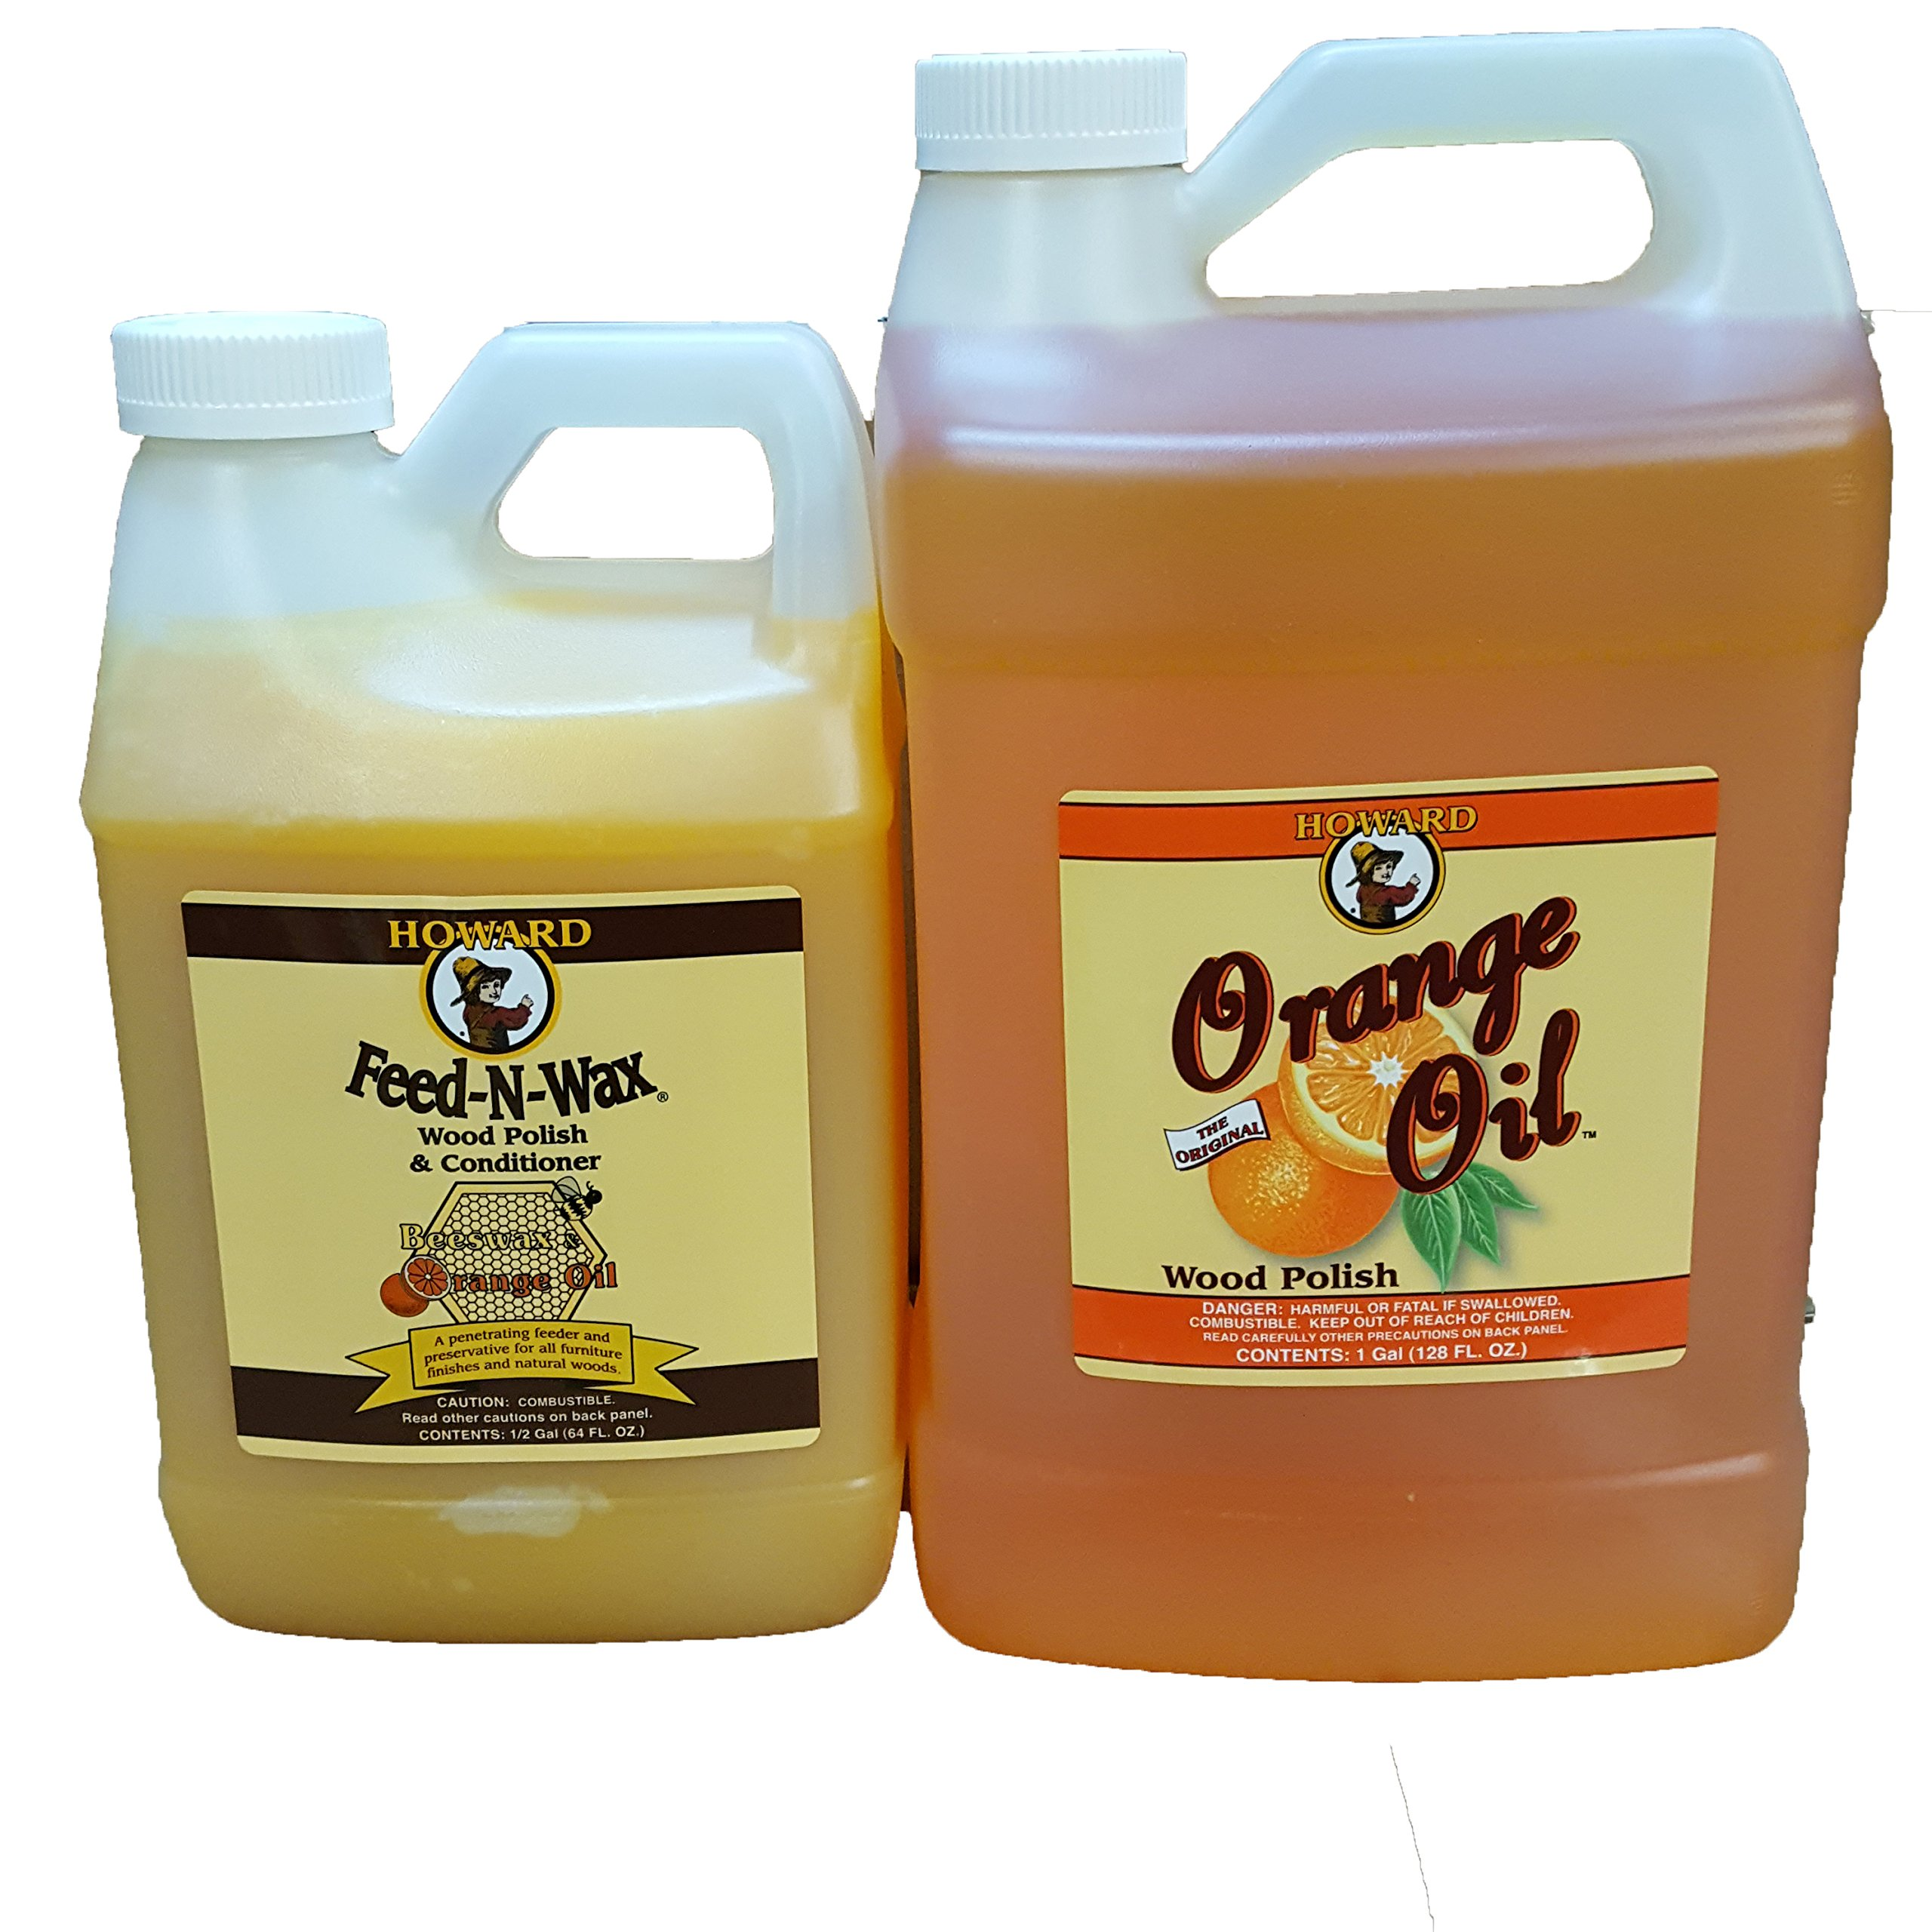 Howard Feed-N-Wax 1/2 Gallon and Howard Orange Oil Gallon, Clean Kitchen Cabinets, Wood Cleaner, Orange Wood Cleaner, Clean Hardwood Floors, Beeswax Wood Preserver by Howard Products (Image #1)